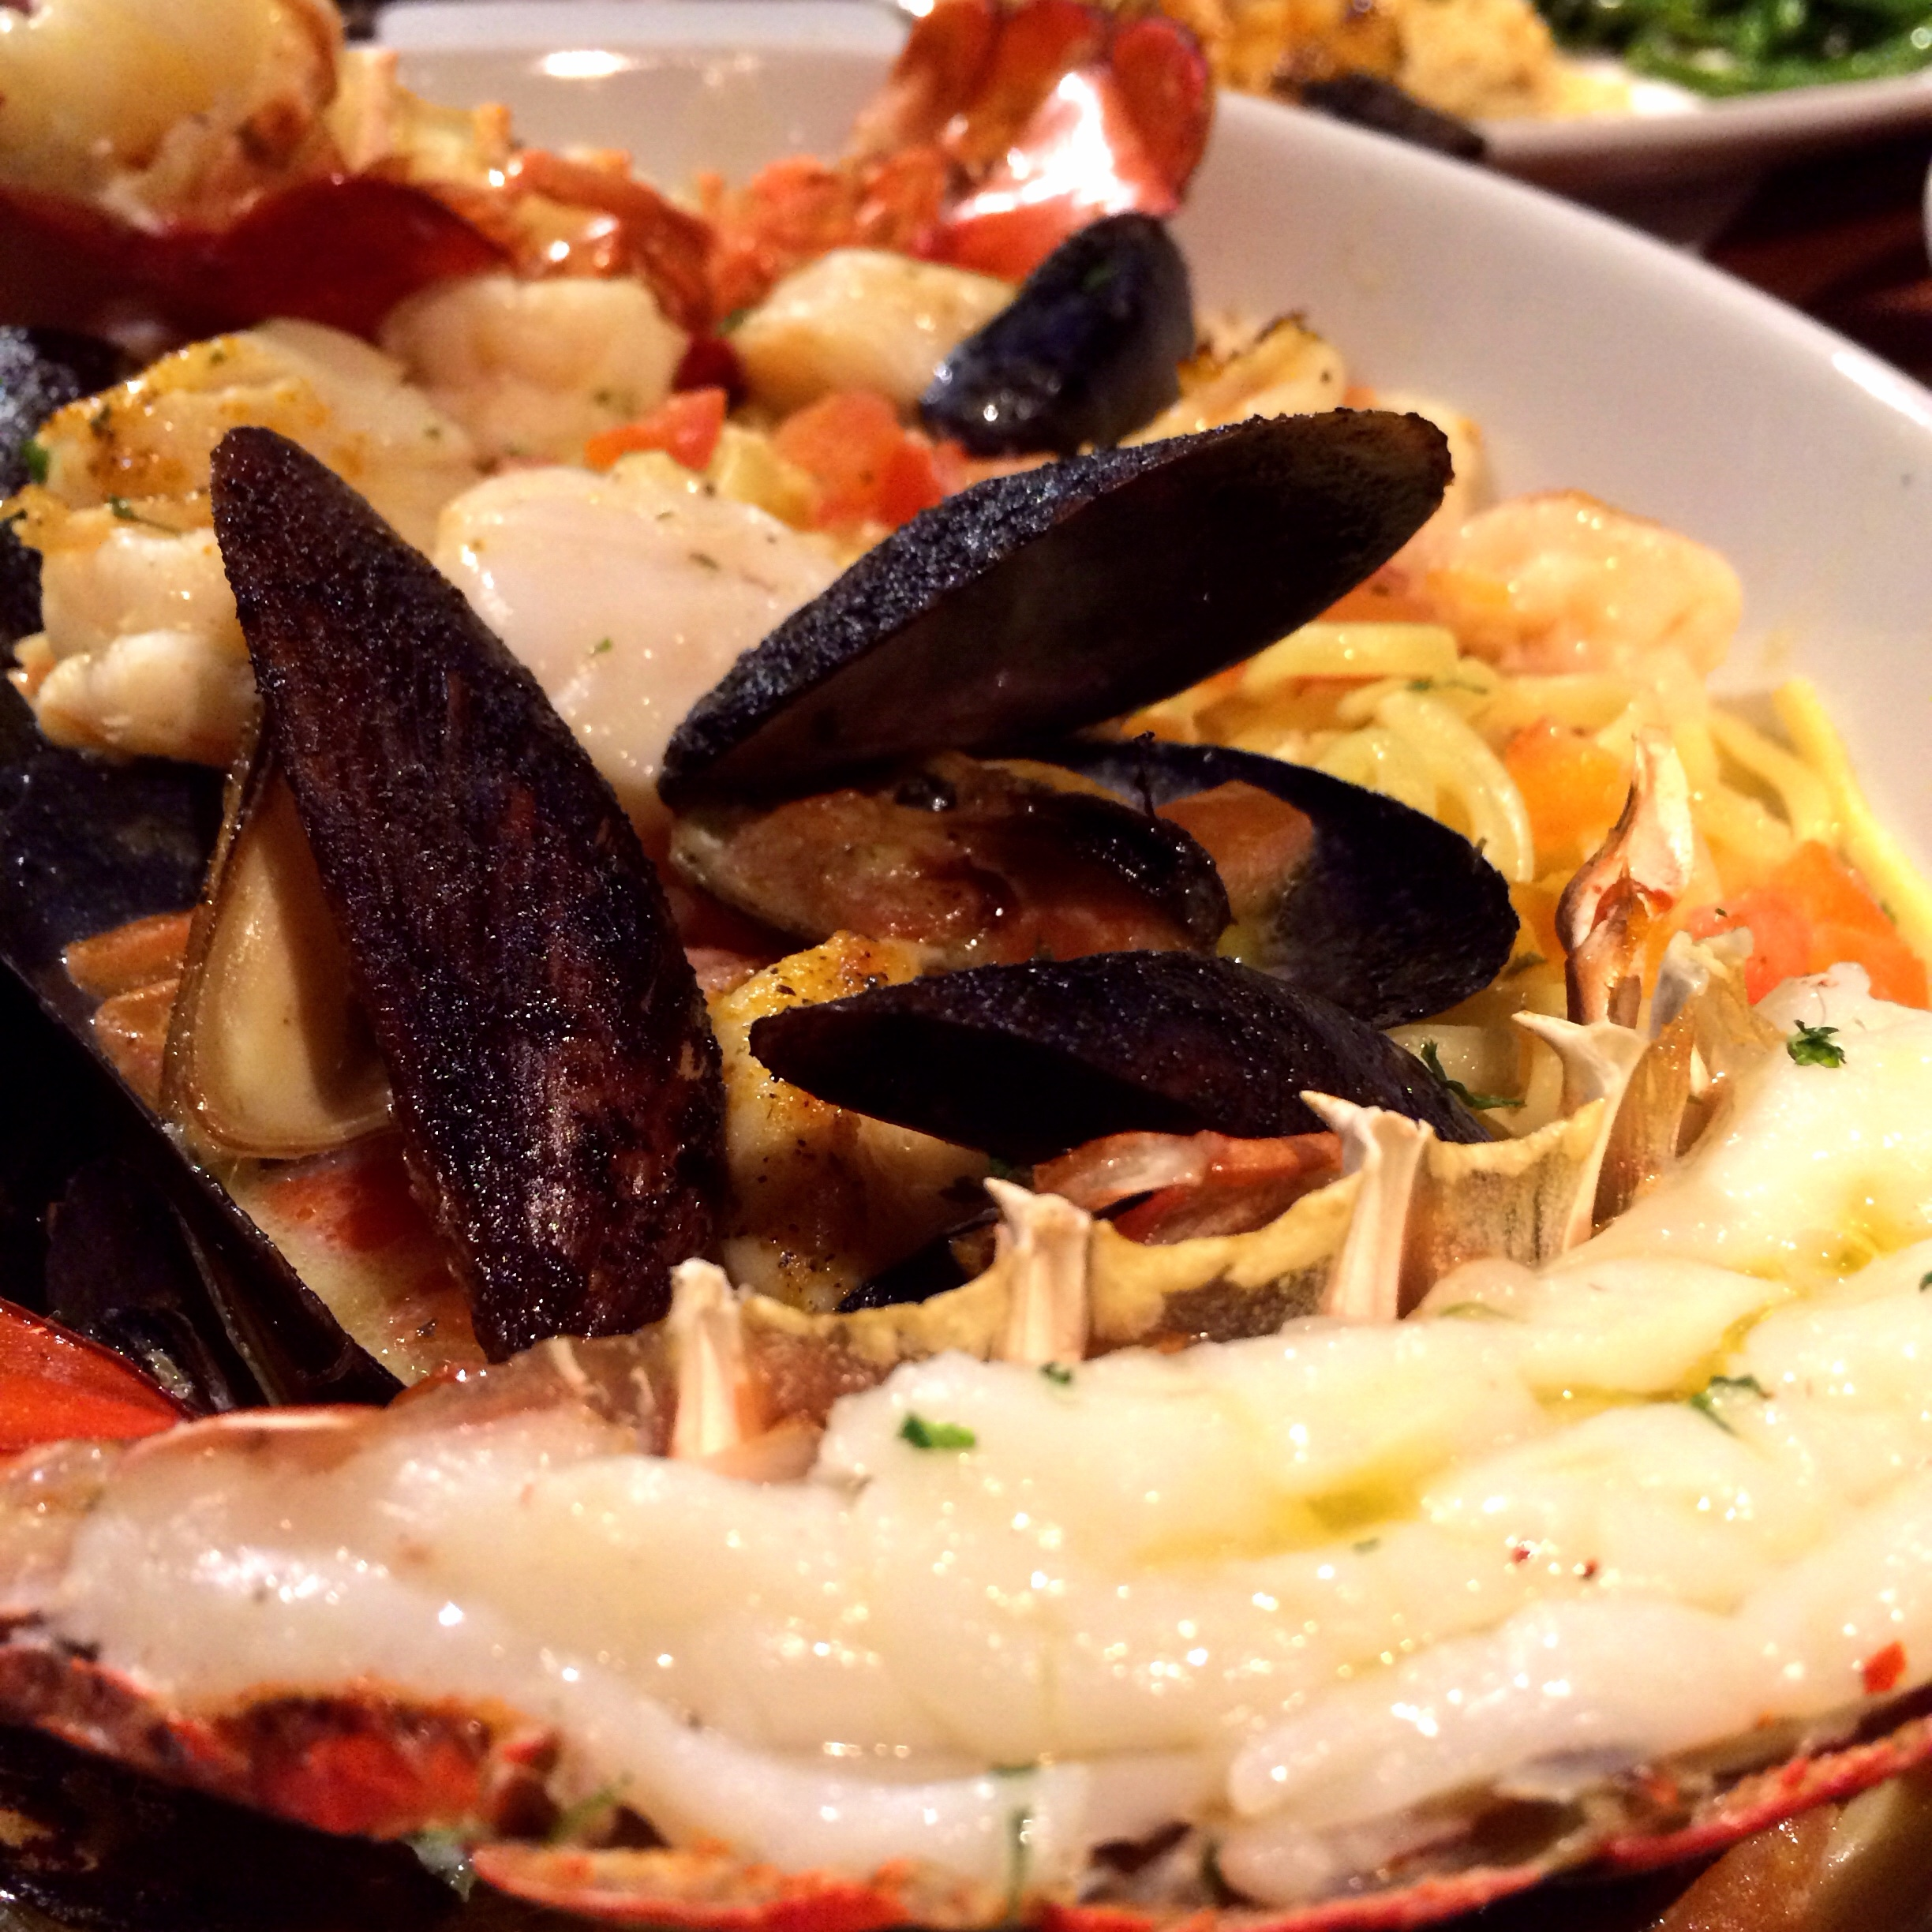 Bar Harbor Lobster Bake. A roasted split Maine lobster tail, tender shrimp, sea scallops, mussels and linguini in a garlic and white wine broth